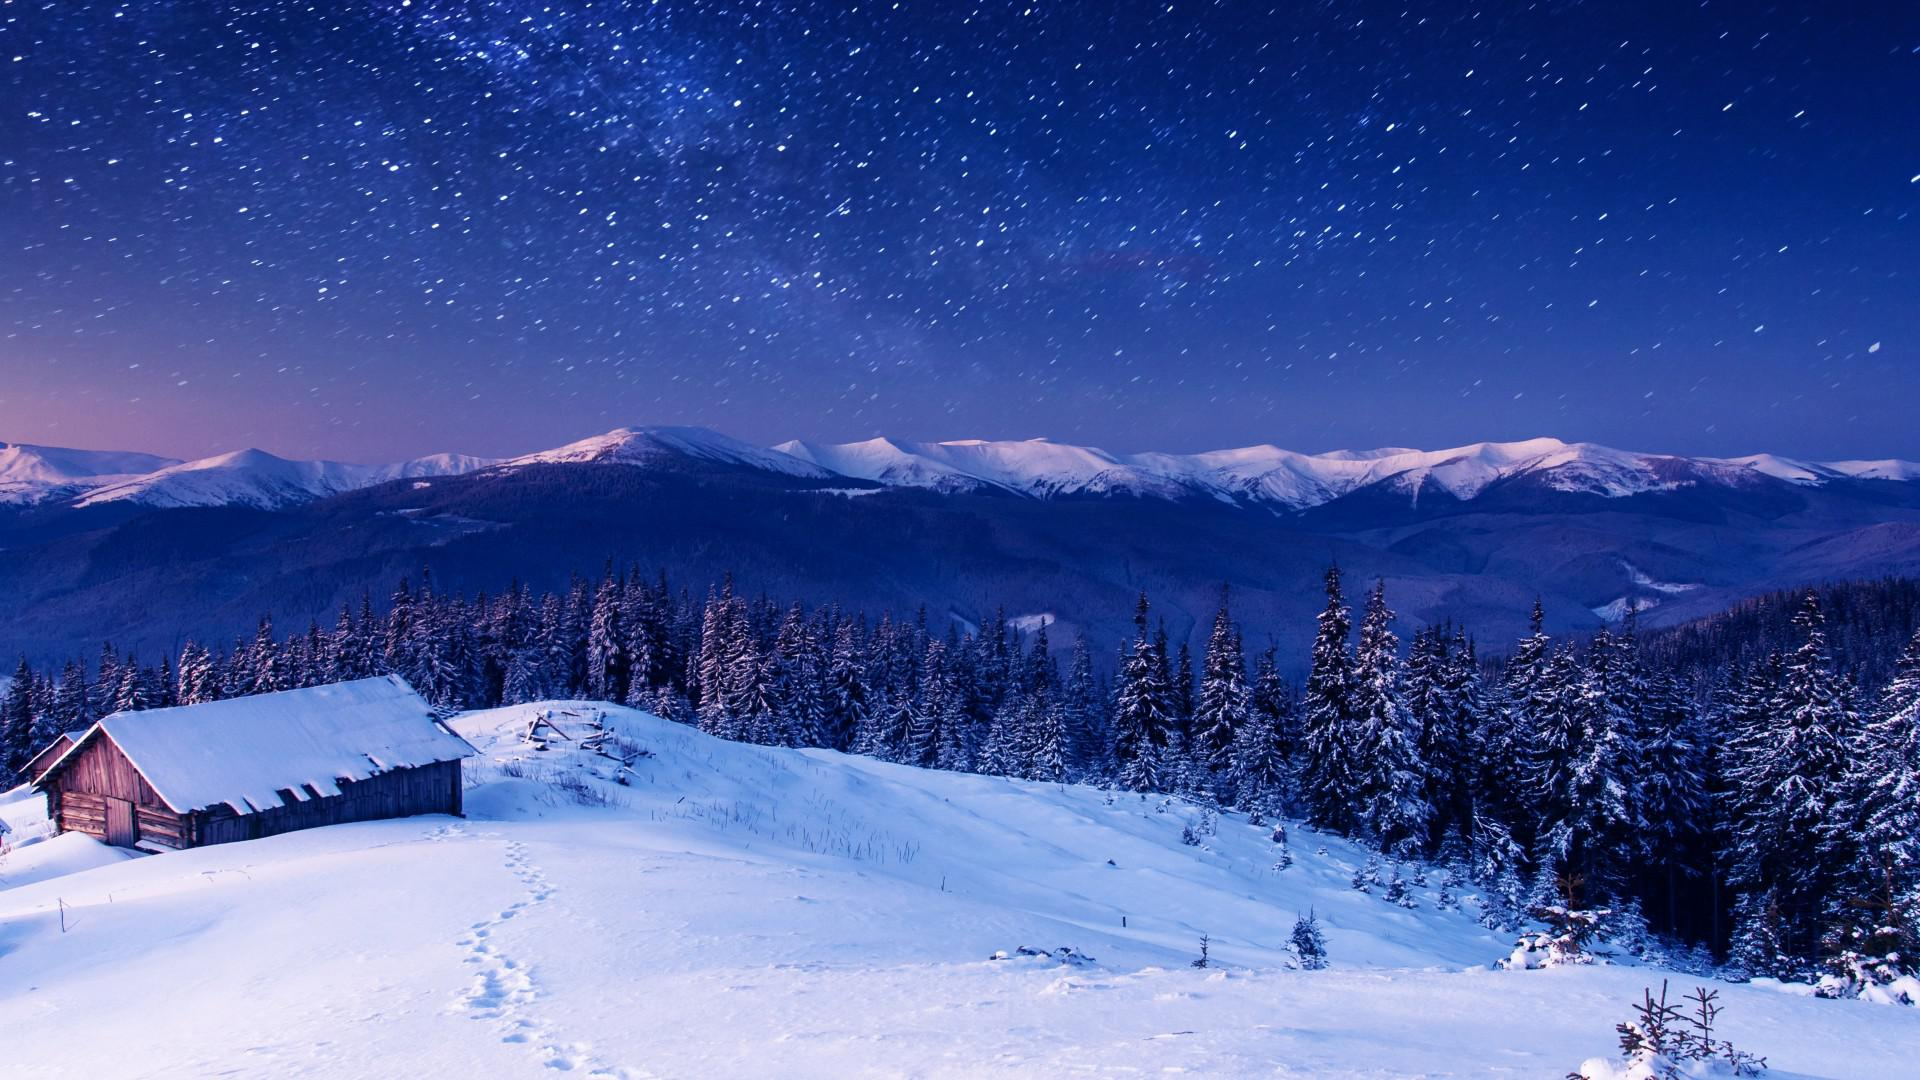 Houses mountains trees snow night stars